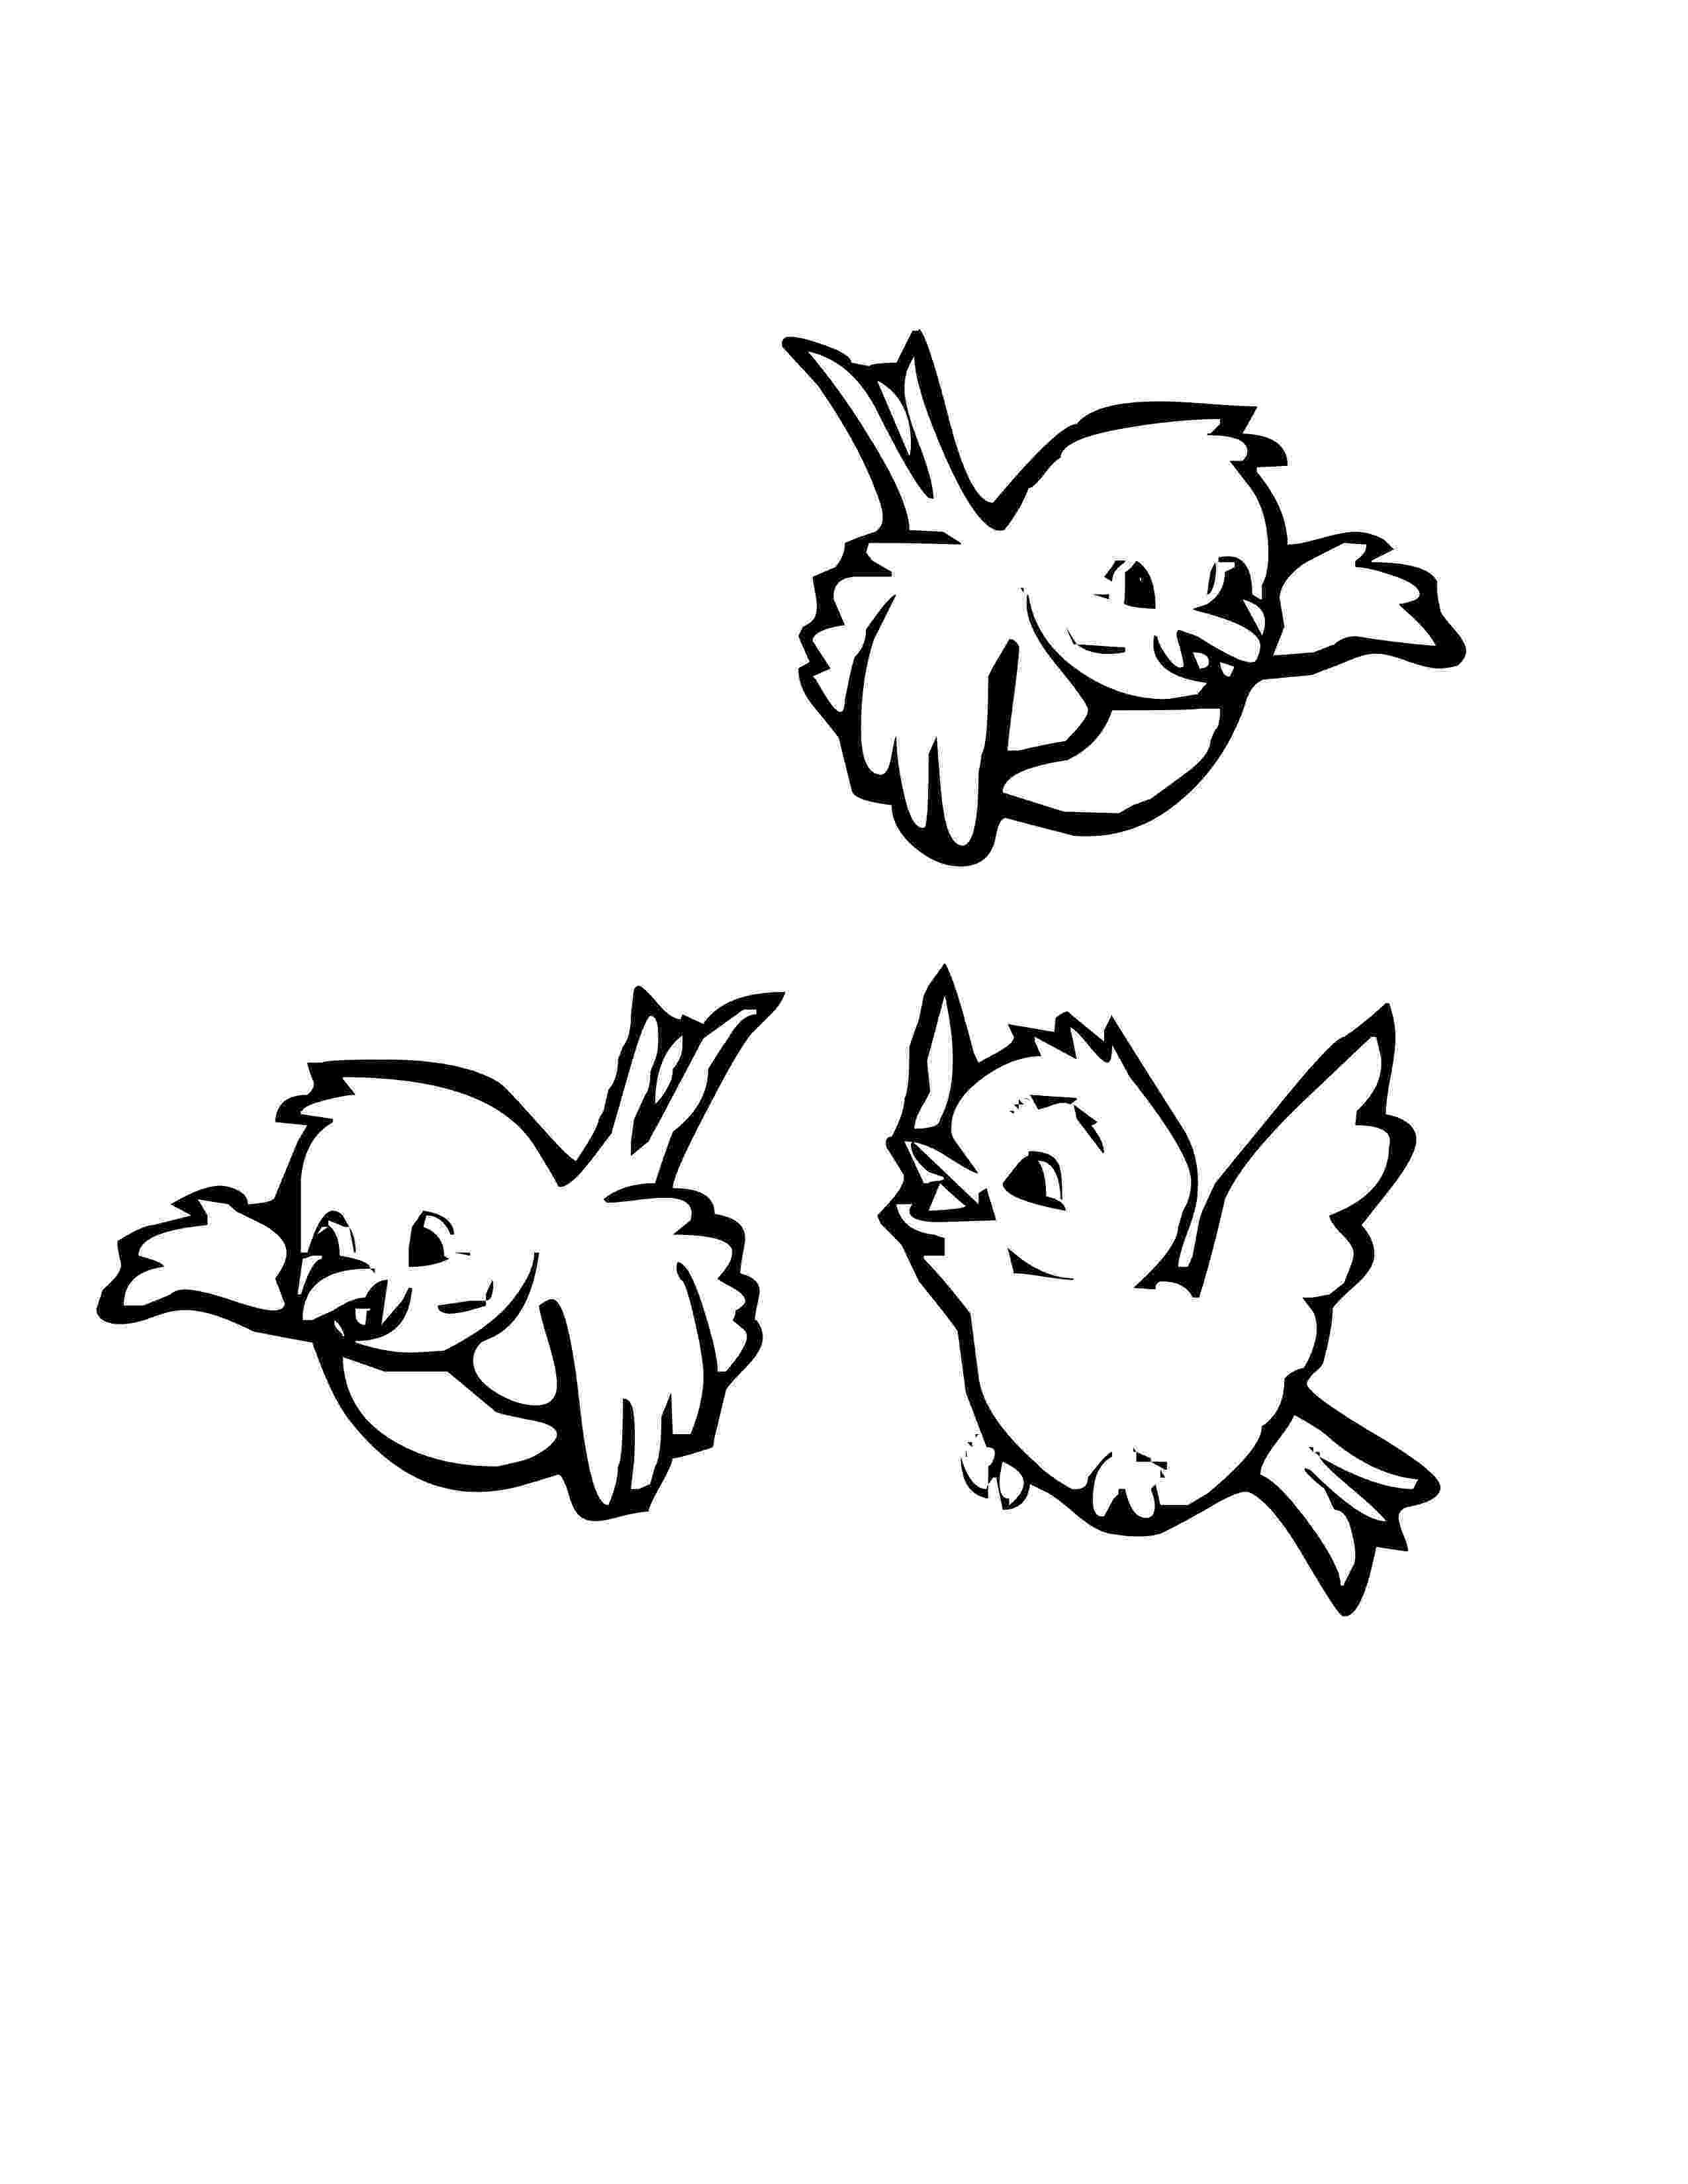 images of birds for colouring cuckoo bird coloring pages of colouring for birds images